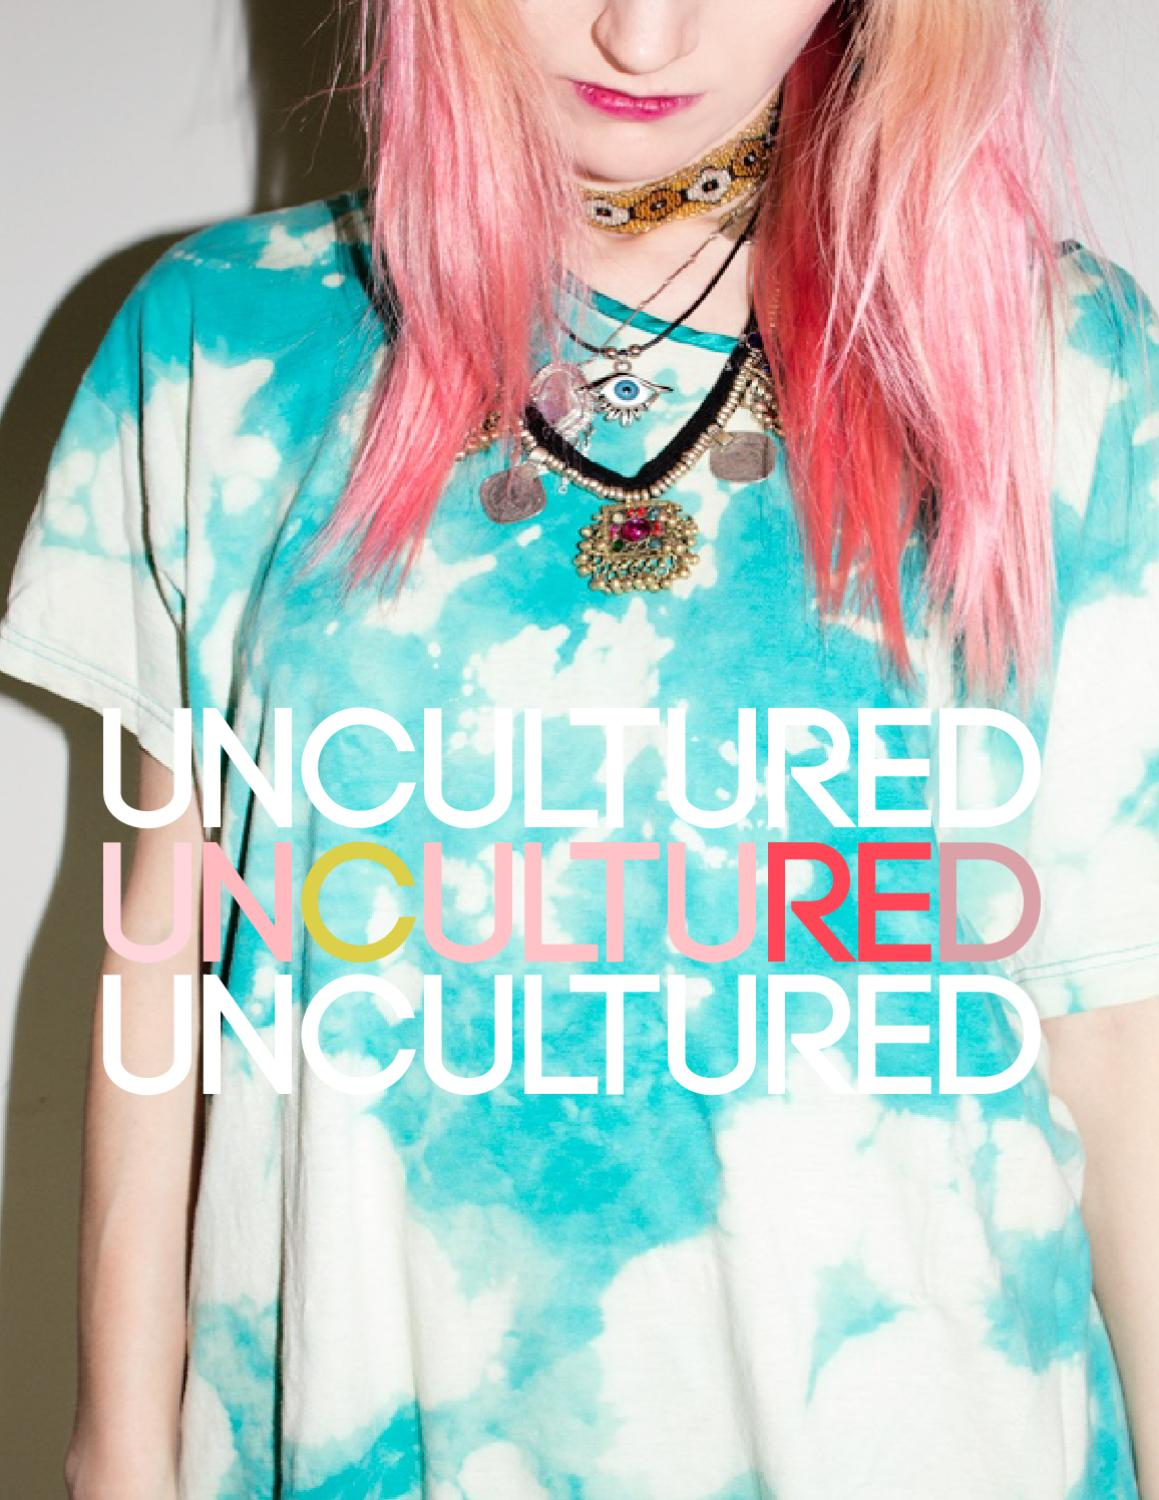 UNCULTURED 004 - IT FEELS SO GOOD TO BE BAD by UNCULTURED ...